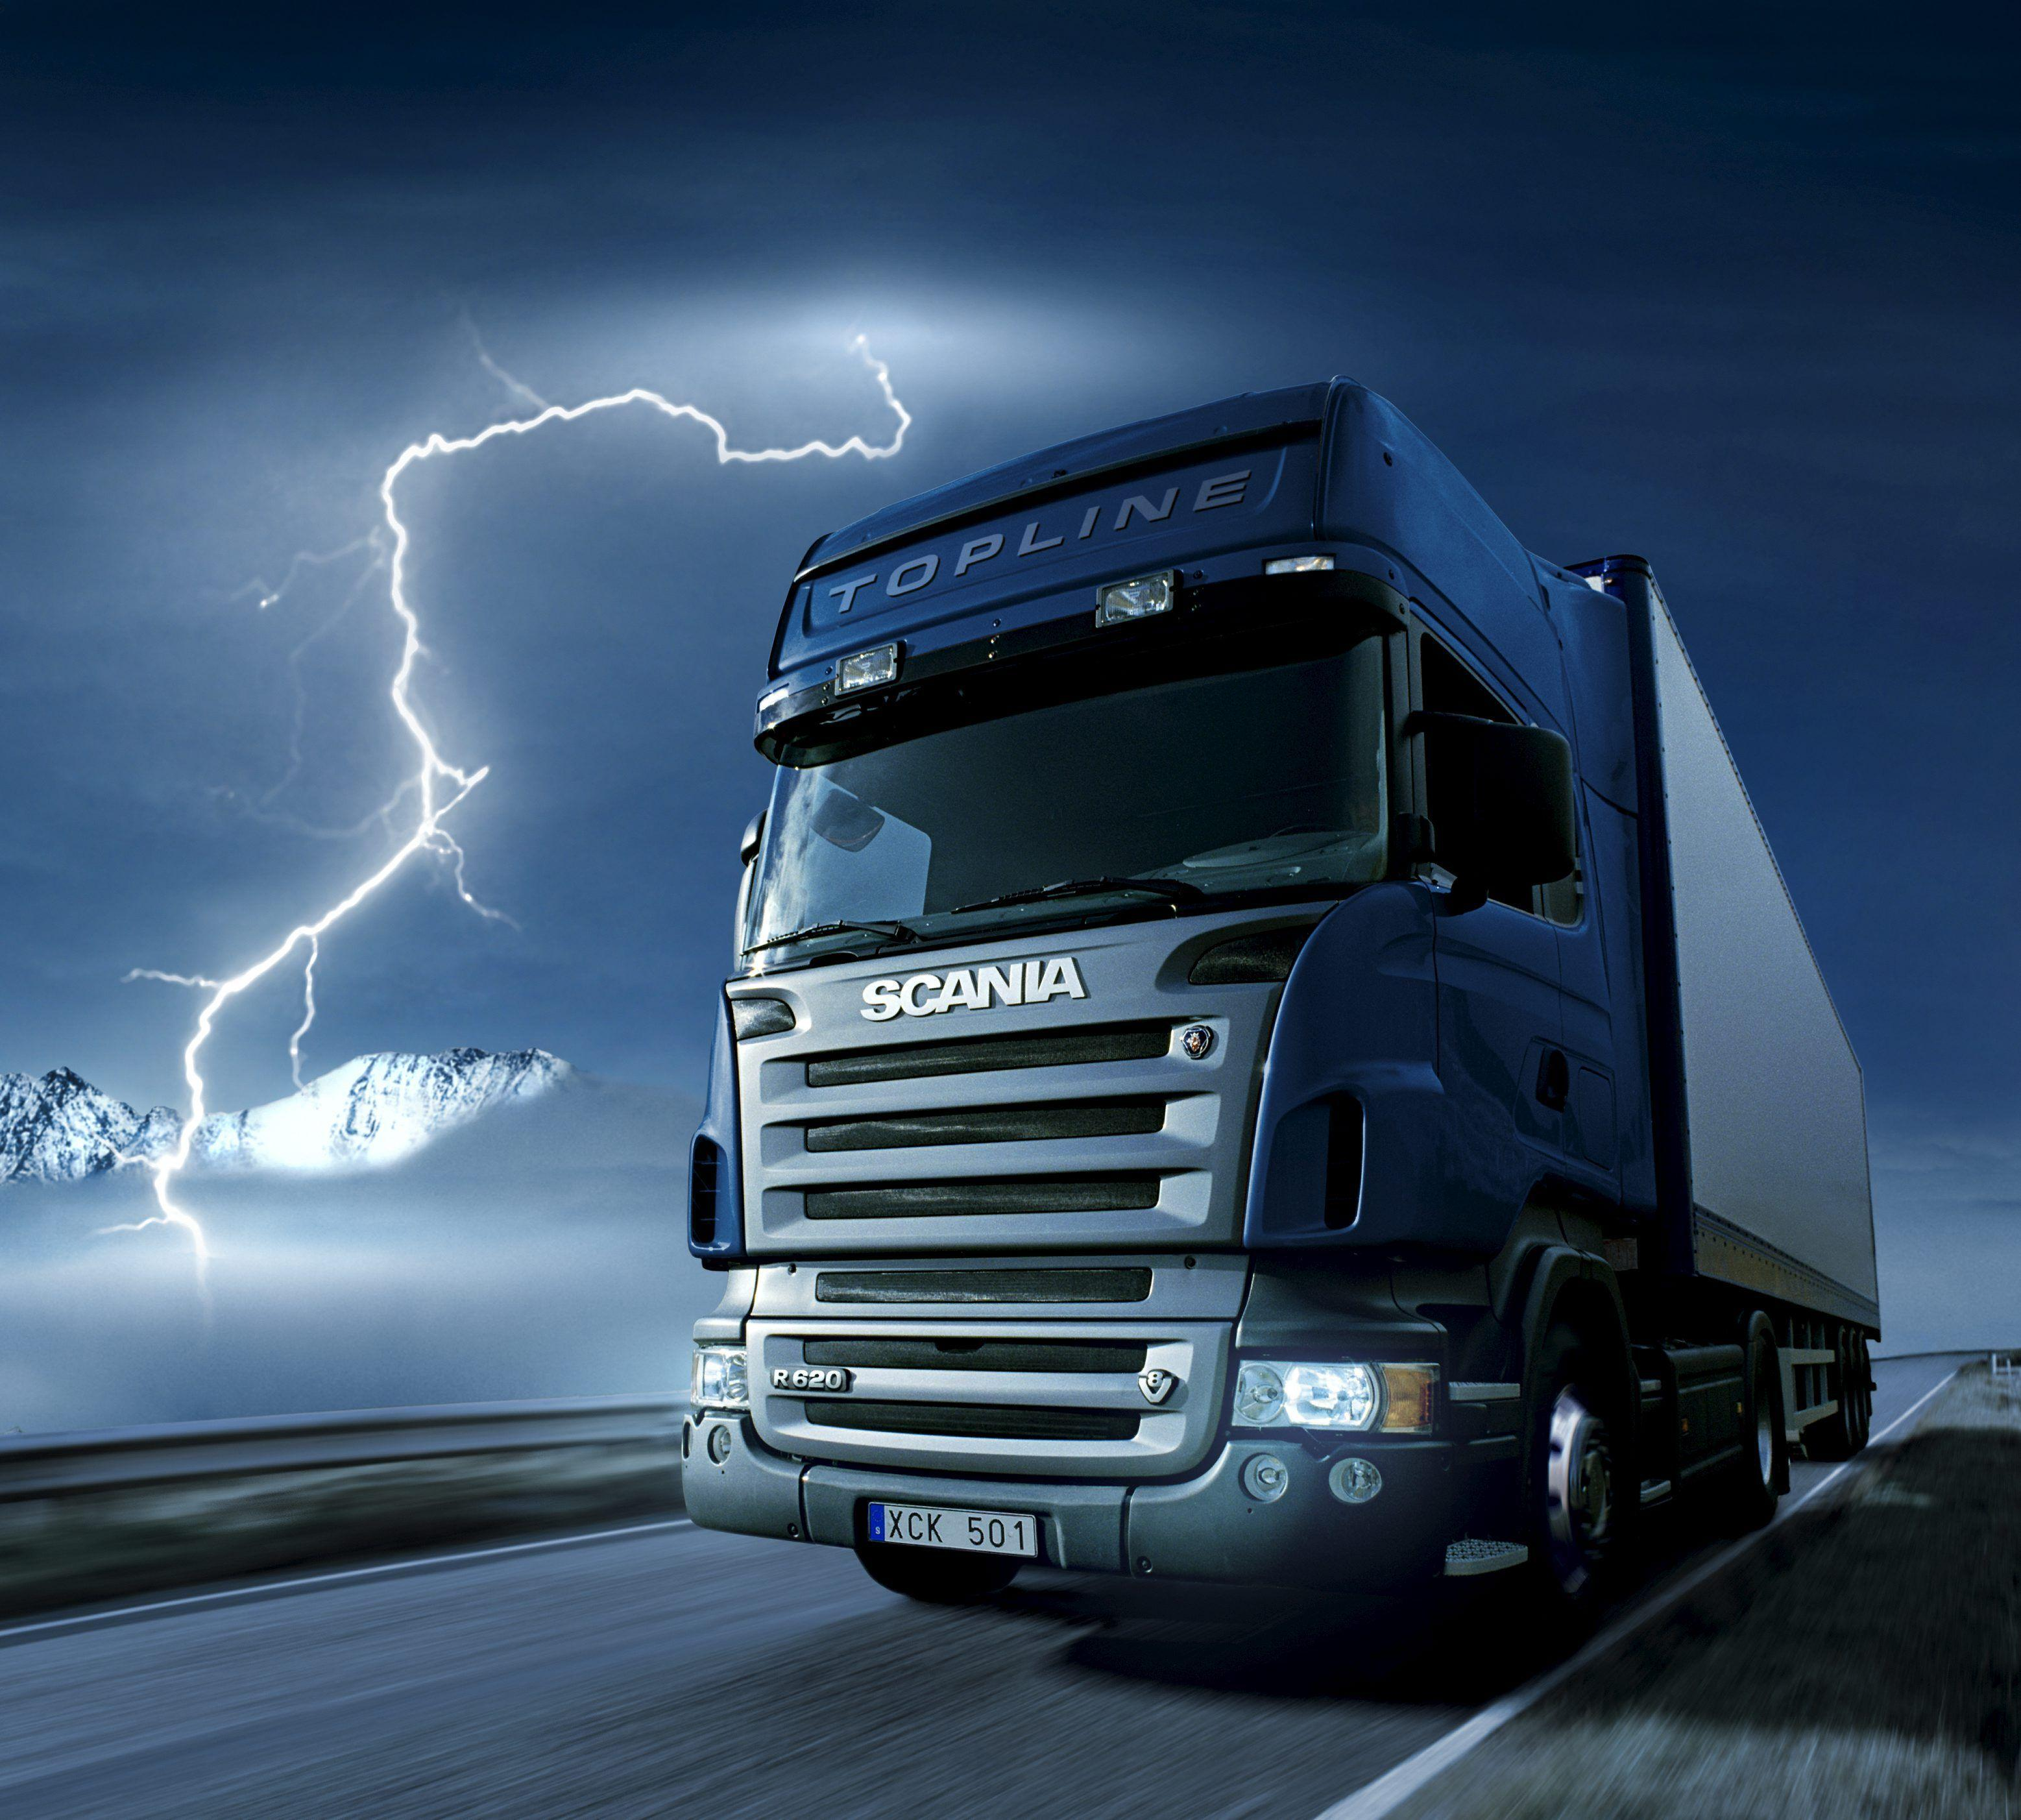 Scania Trucks Wallpapers 3115x2805